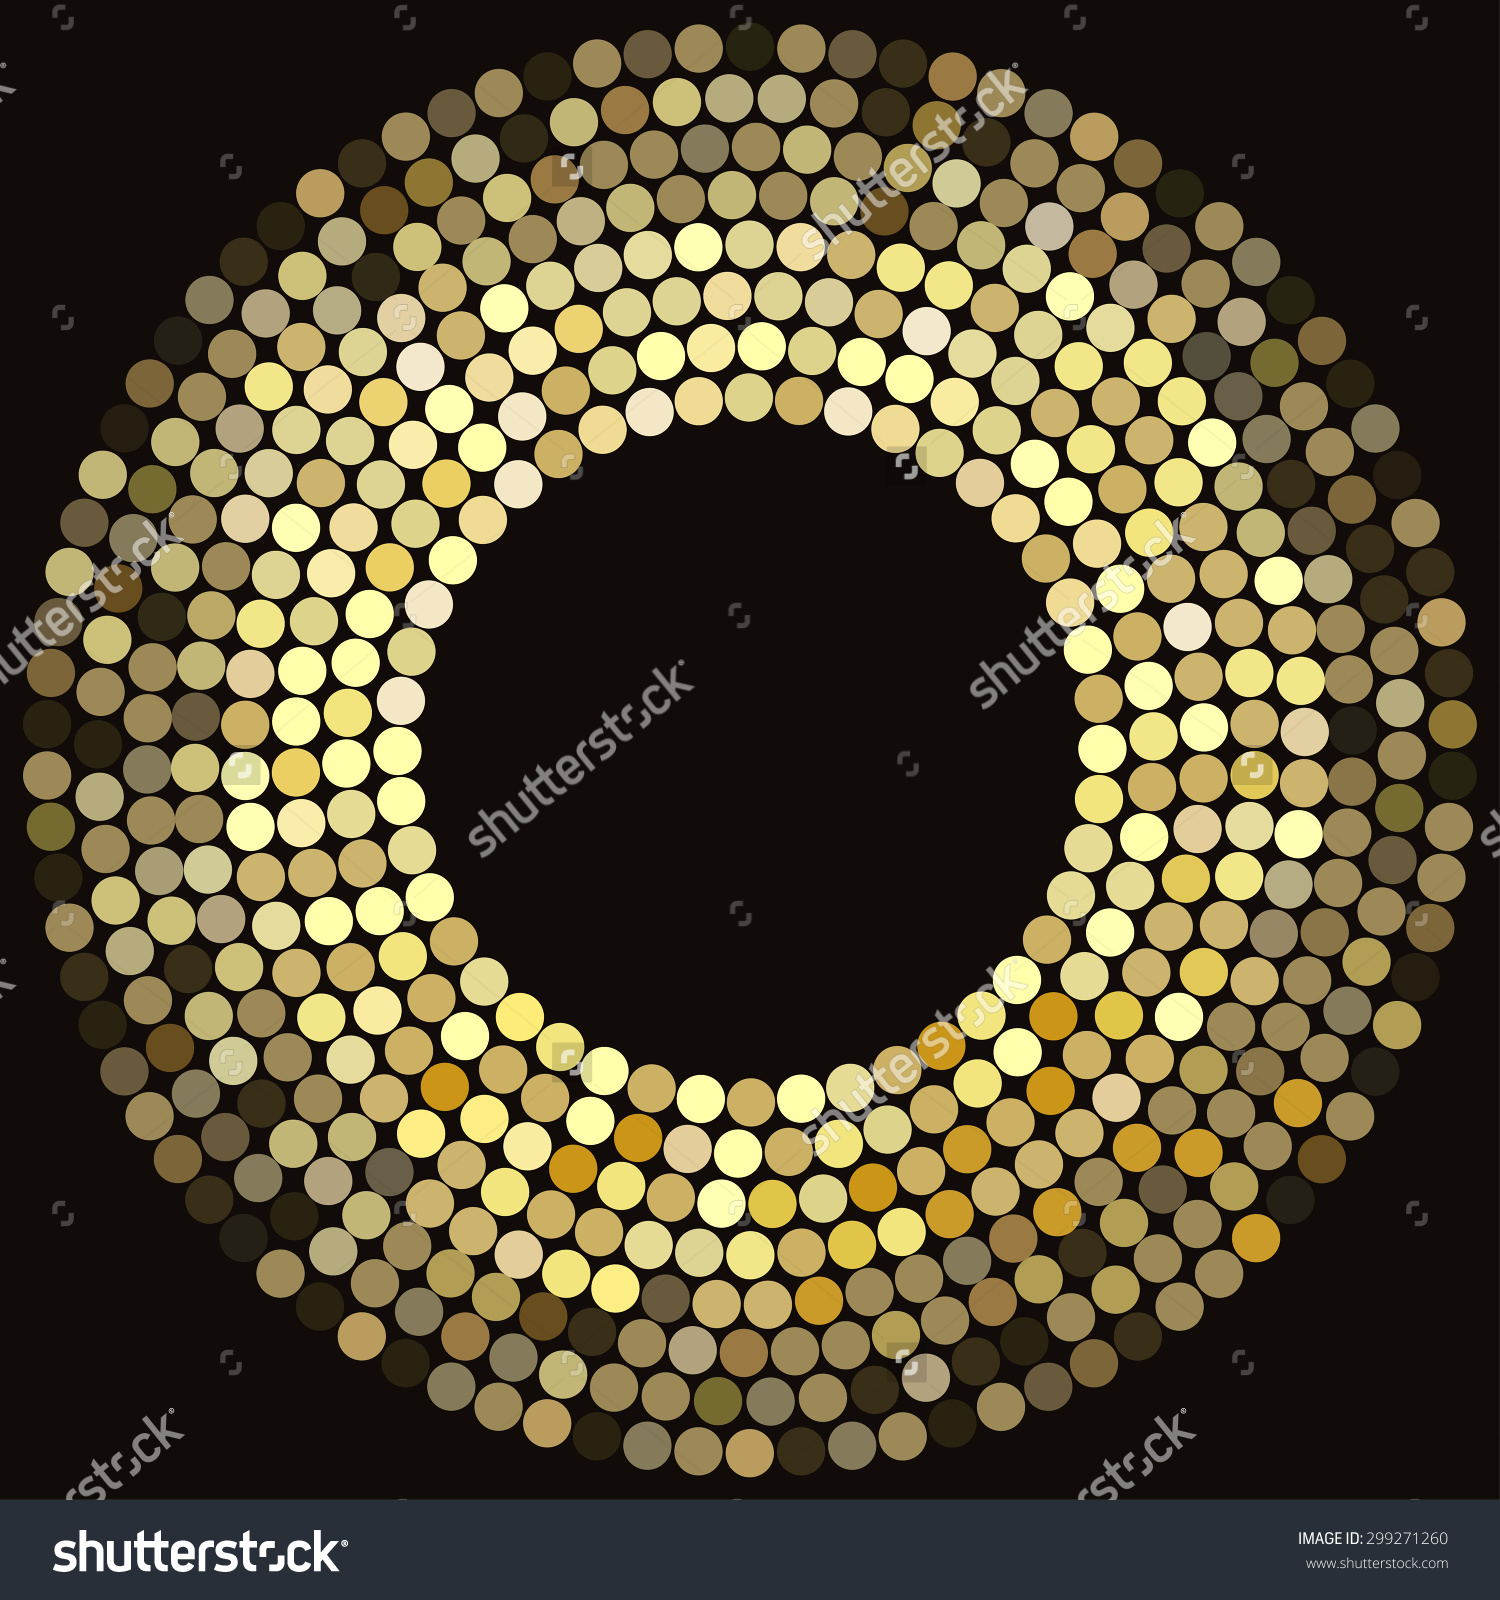 Golden Disco Lights Frame Abstract Mosaic Stock Vector 299271260.